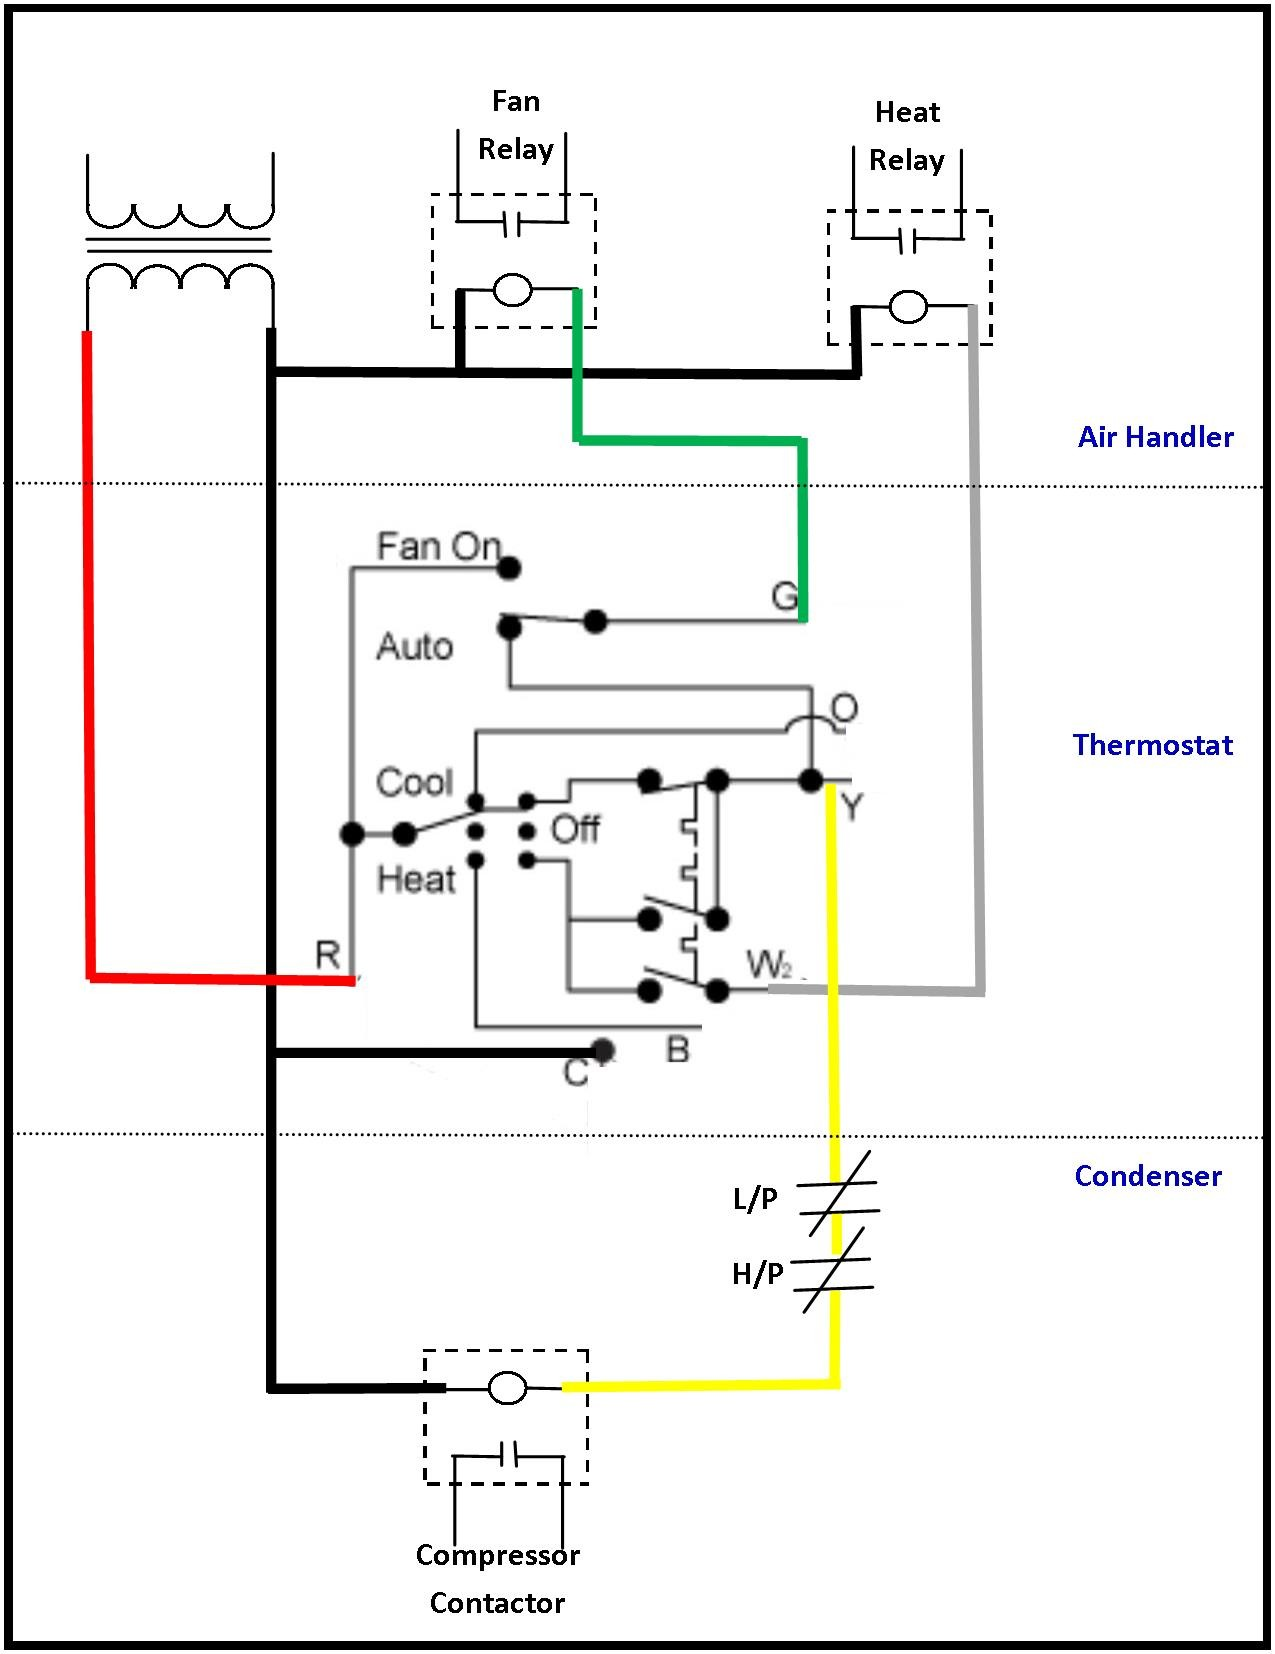 Ac Low Voltage Wiring Diagram Wiring Diagram Besides Low Voltage Wiring Diagrams for Air Handler